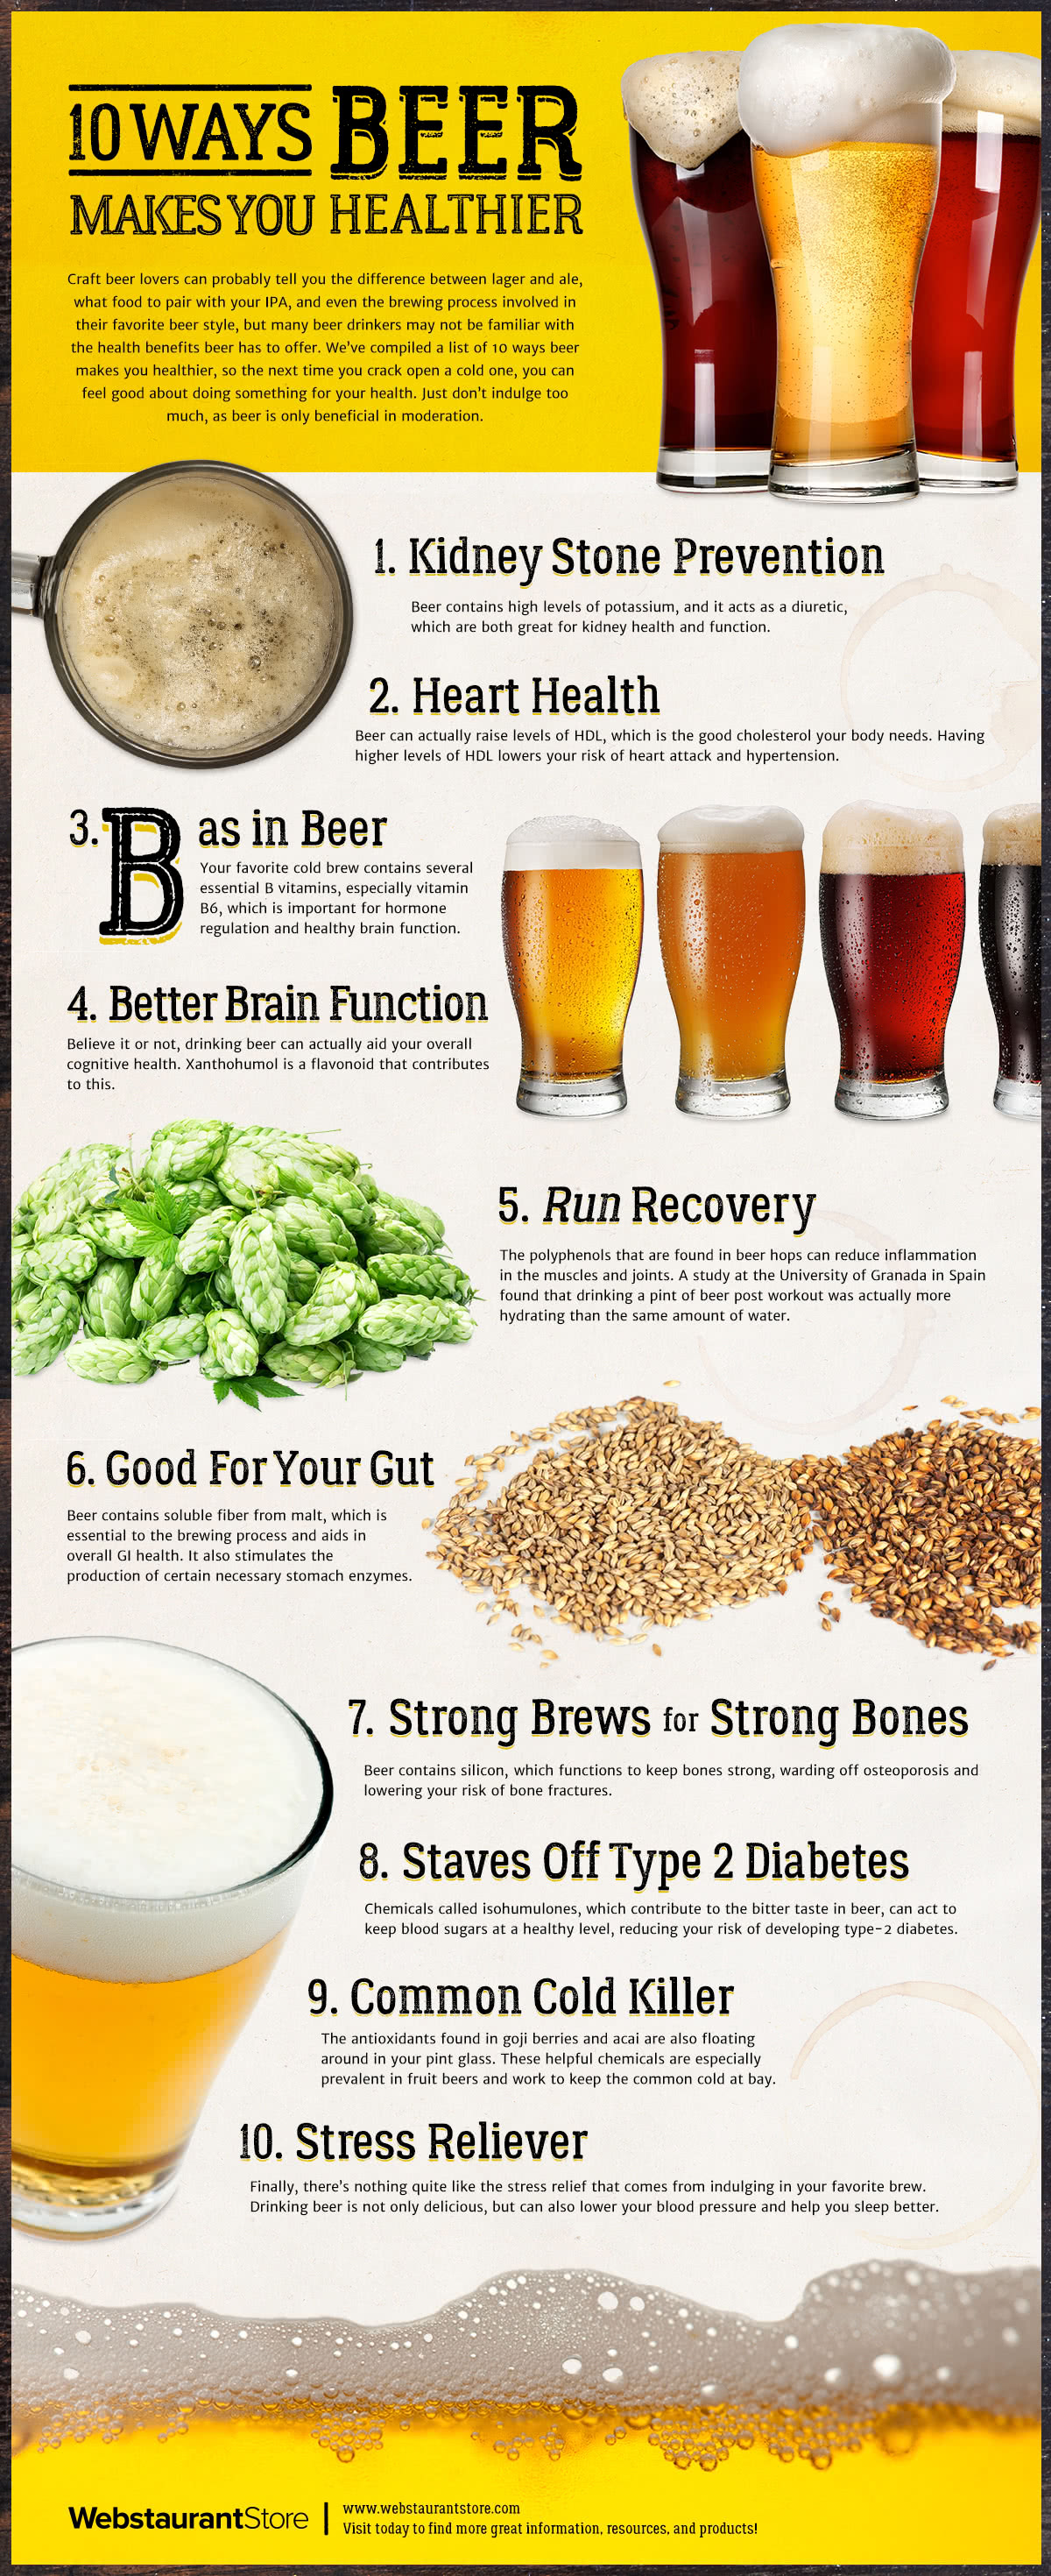 10 Ways Beer Makes You Healthier by WebstaurantStore